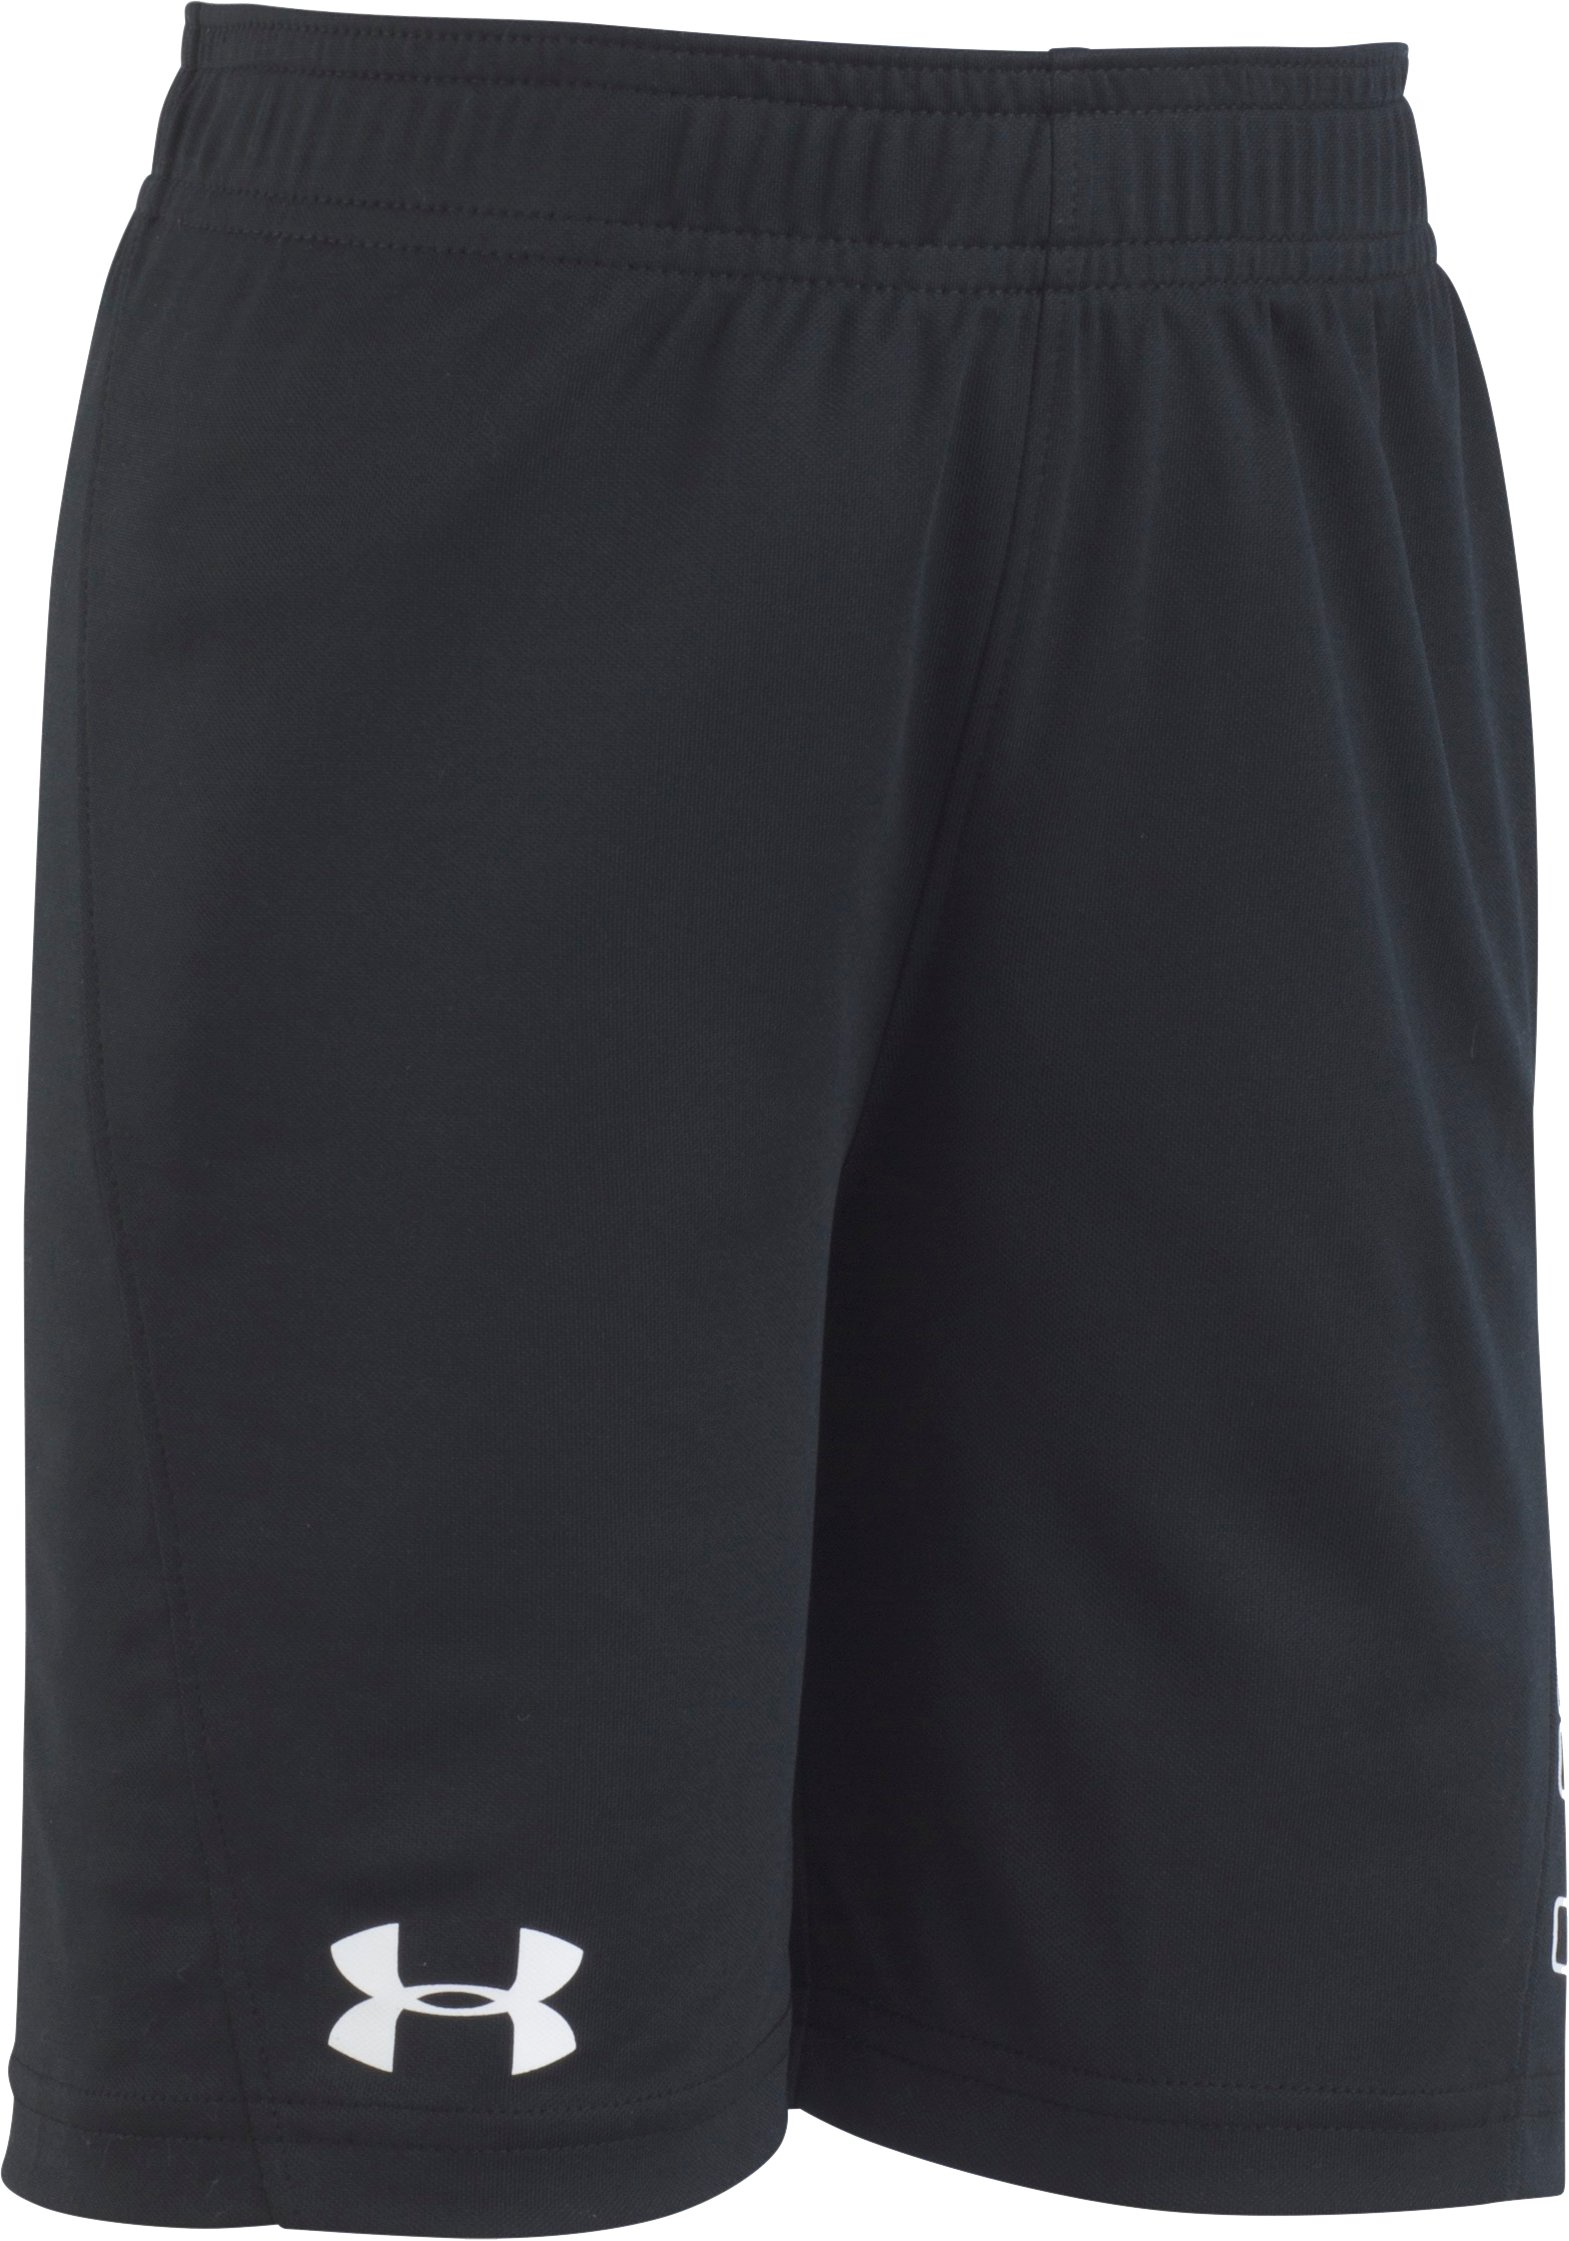 Boys' Pre-School UA Kick Off Solid Shorts , Black